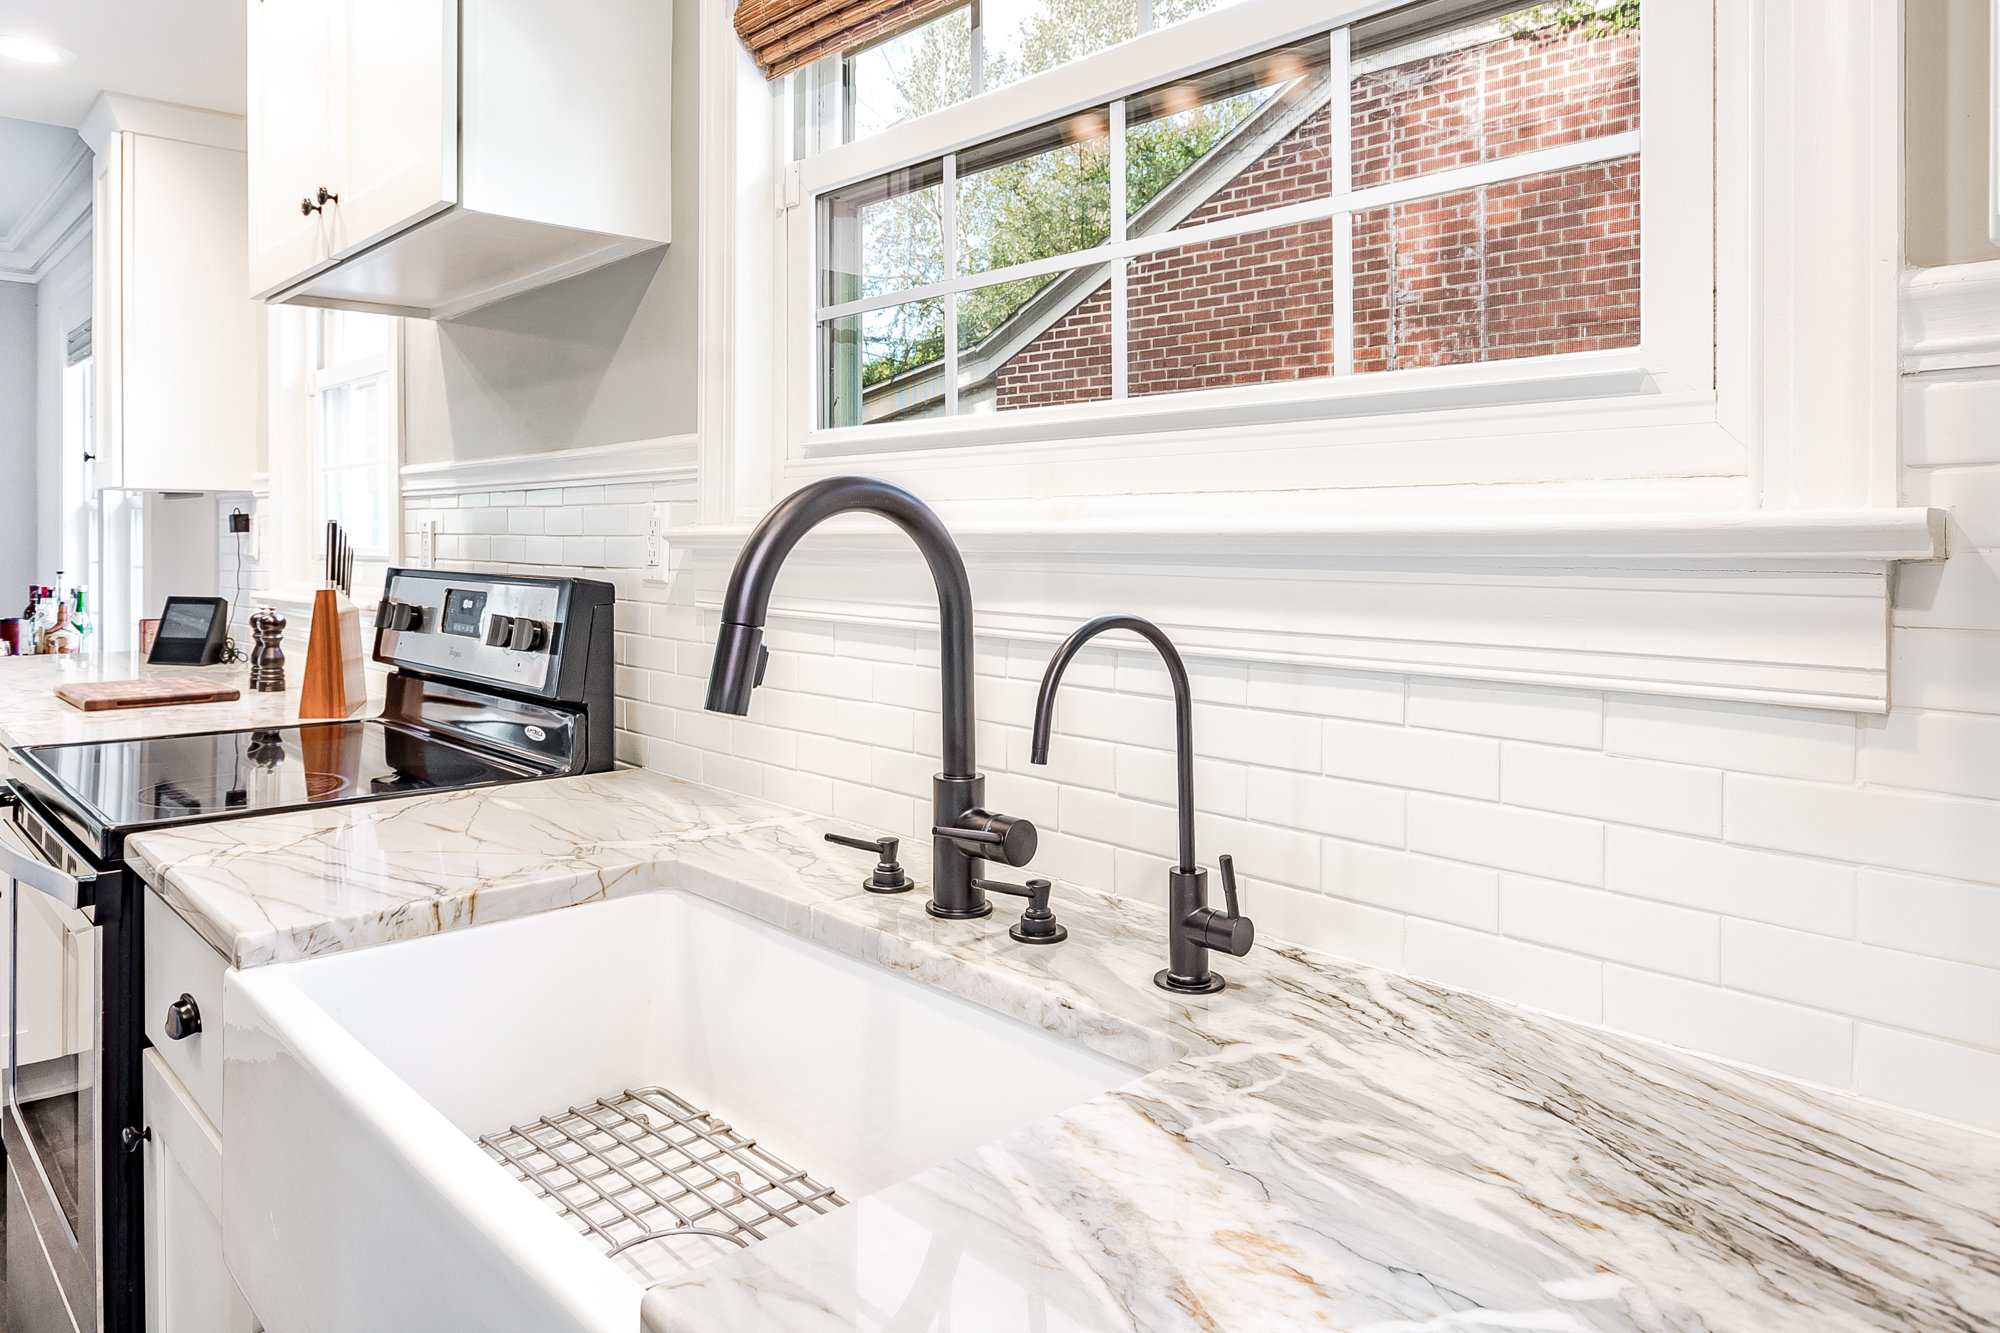 Elegant farmhouse sink and white granite countertops